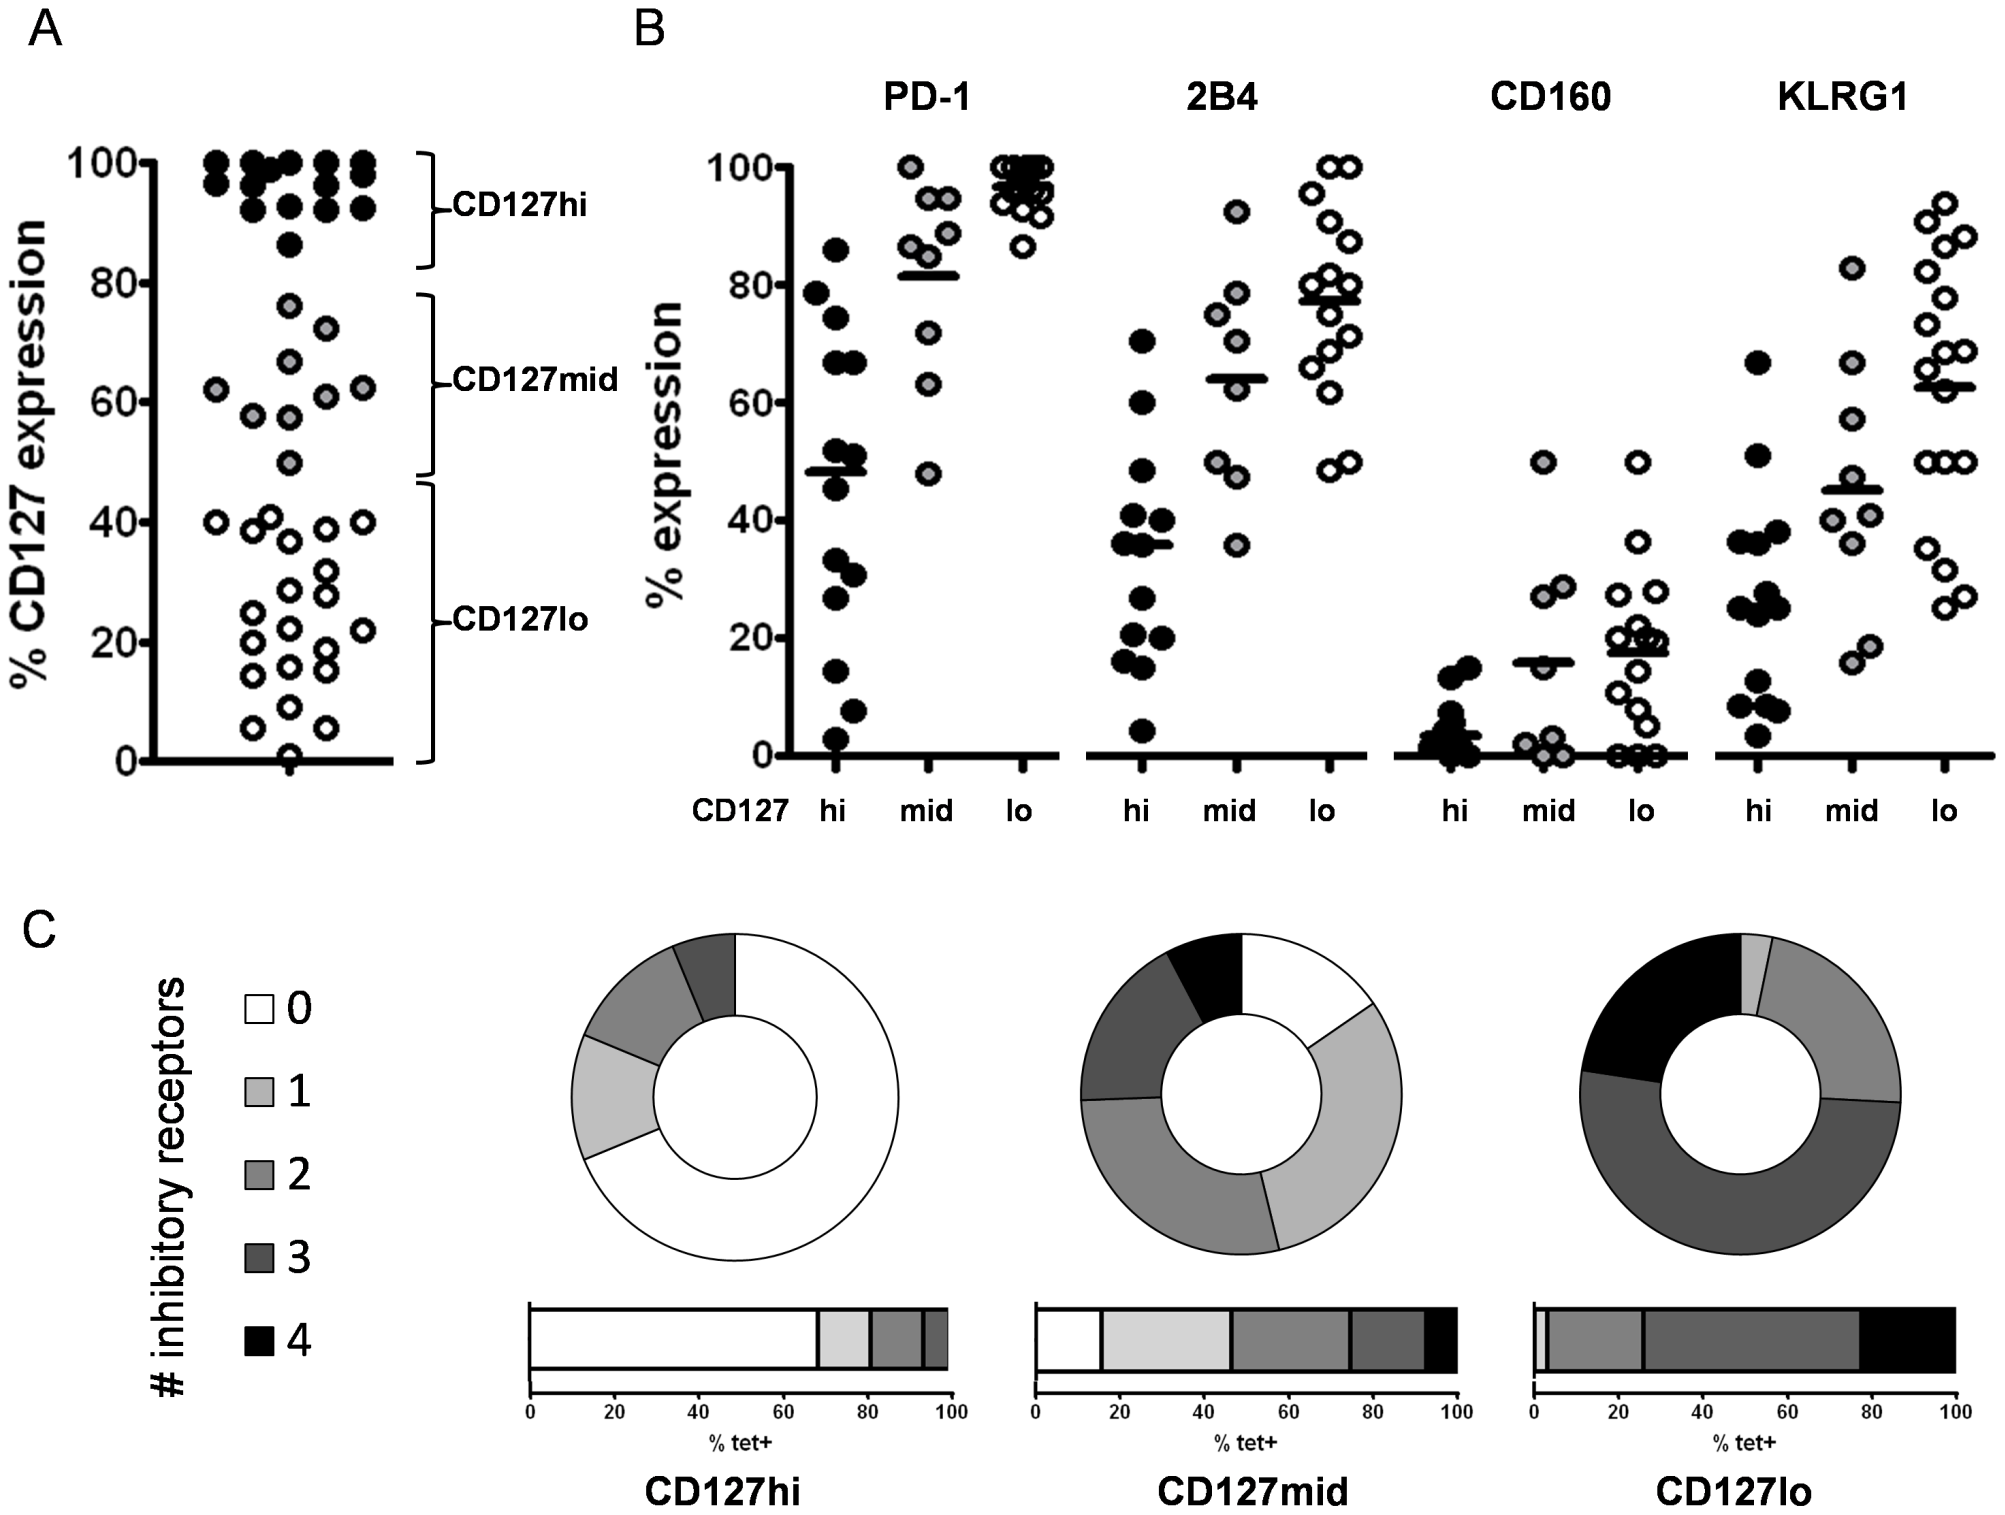 Inhibitory receptor expression is inversely linked to level of CD127 expression.